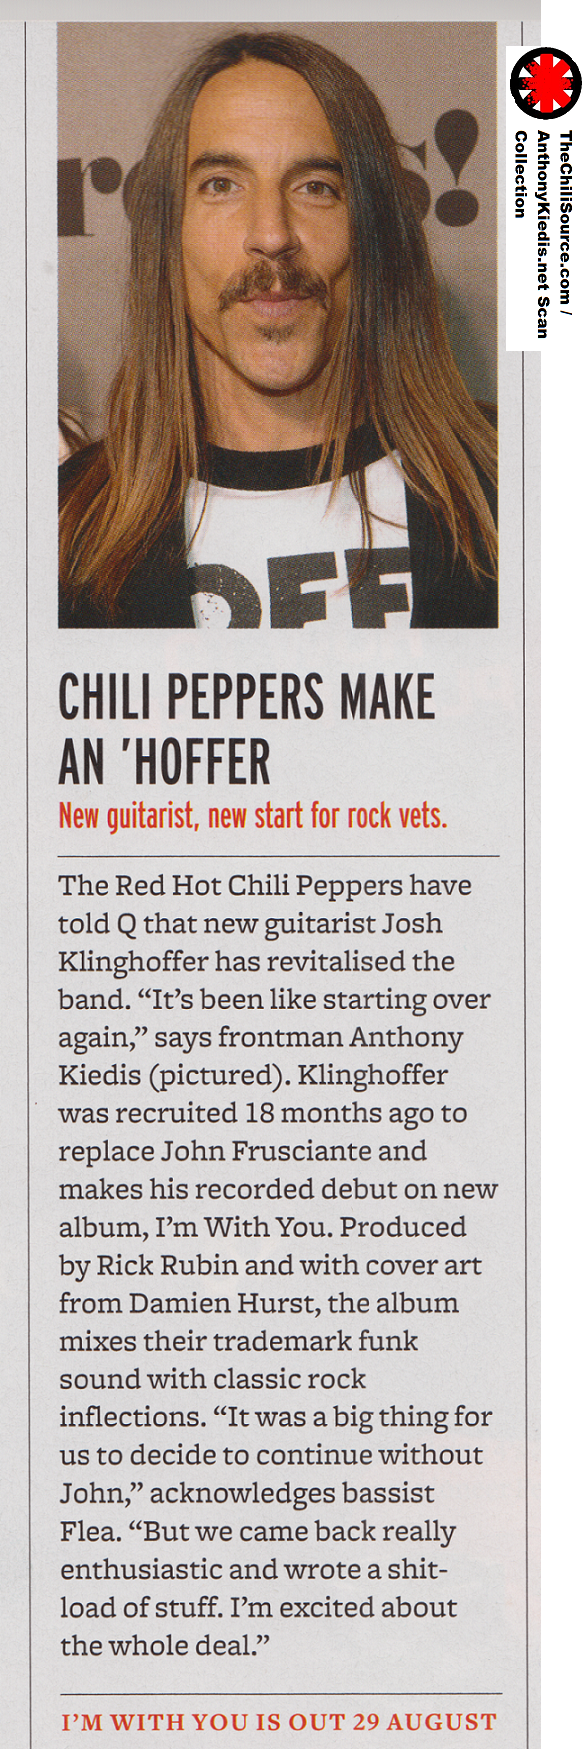 Red Hot Chili Peppers I'm with You Anthony Kiedis